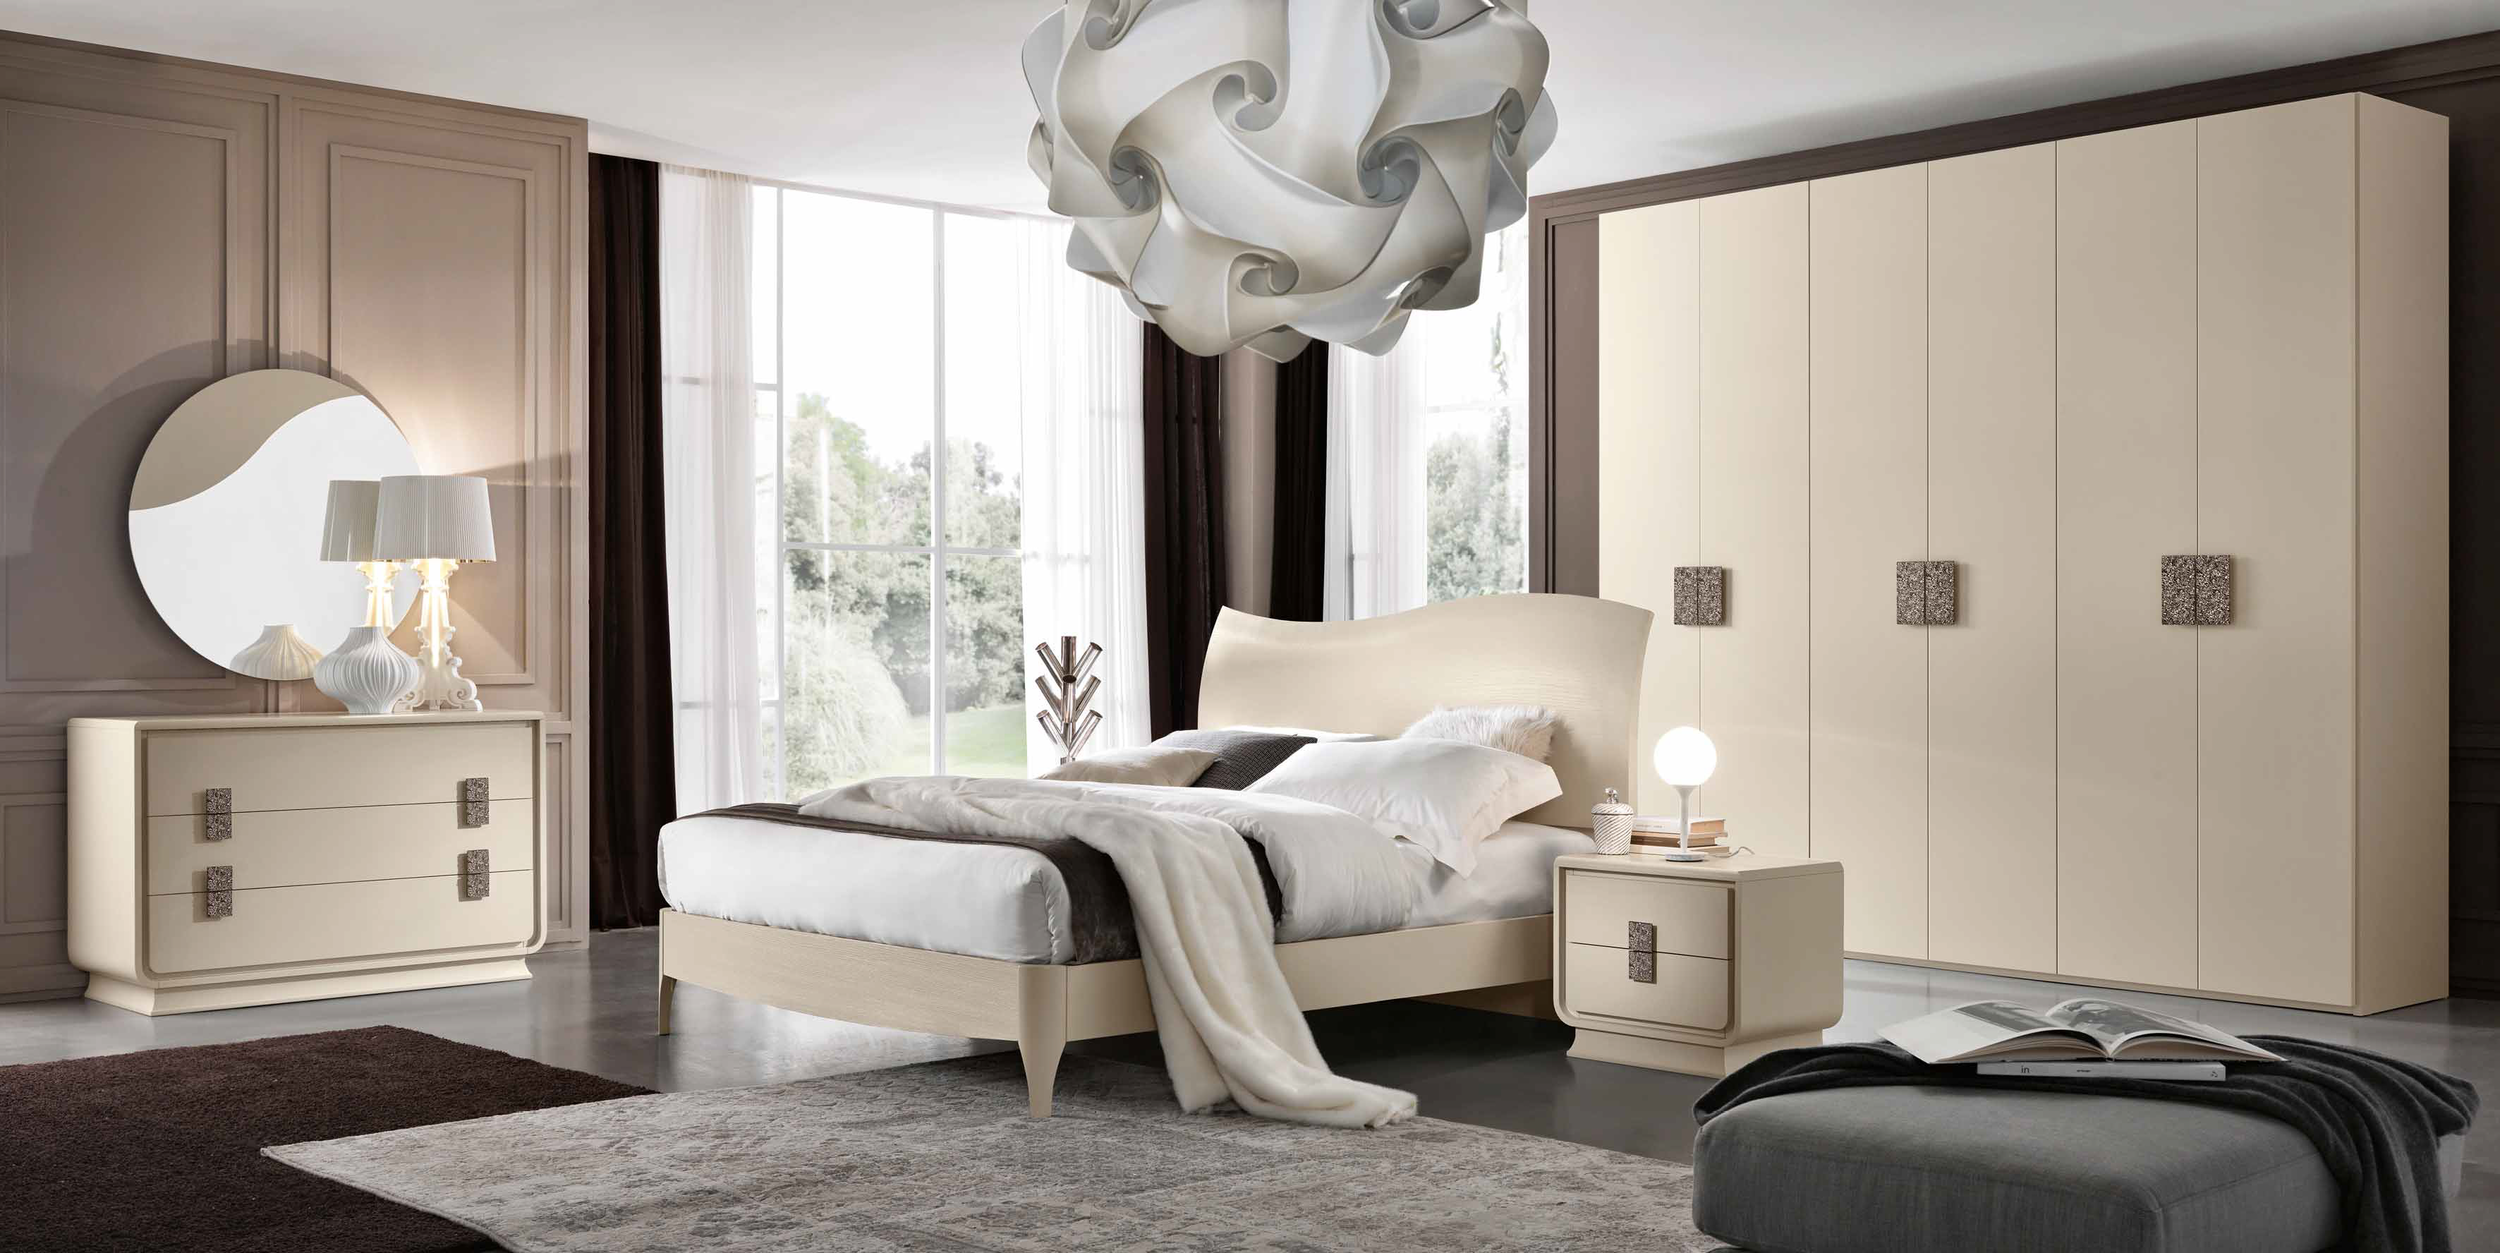 SHAPING YOUR BEDROOM WITH EXCLUSIVE TOUCH